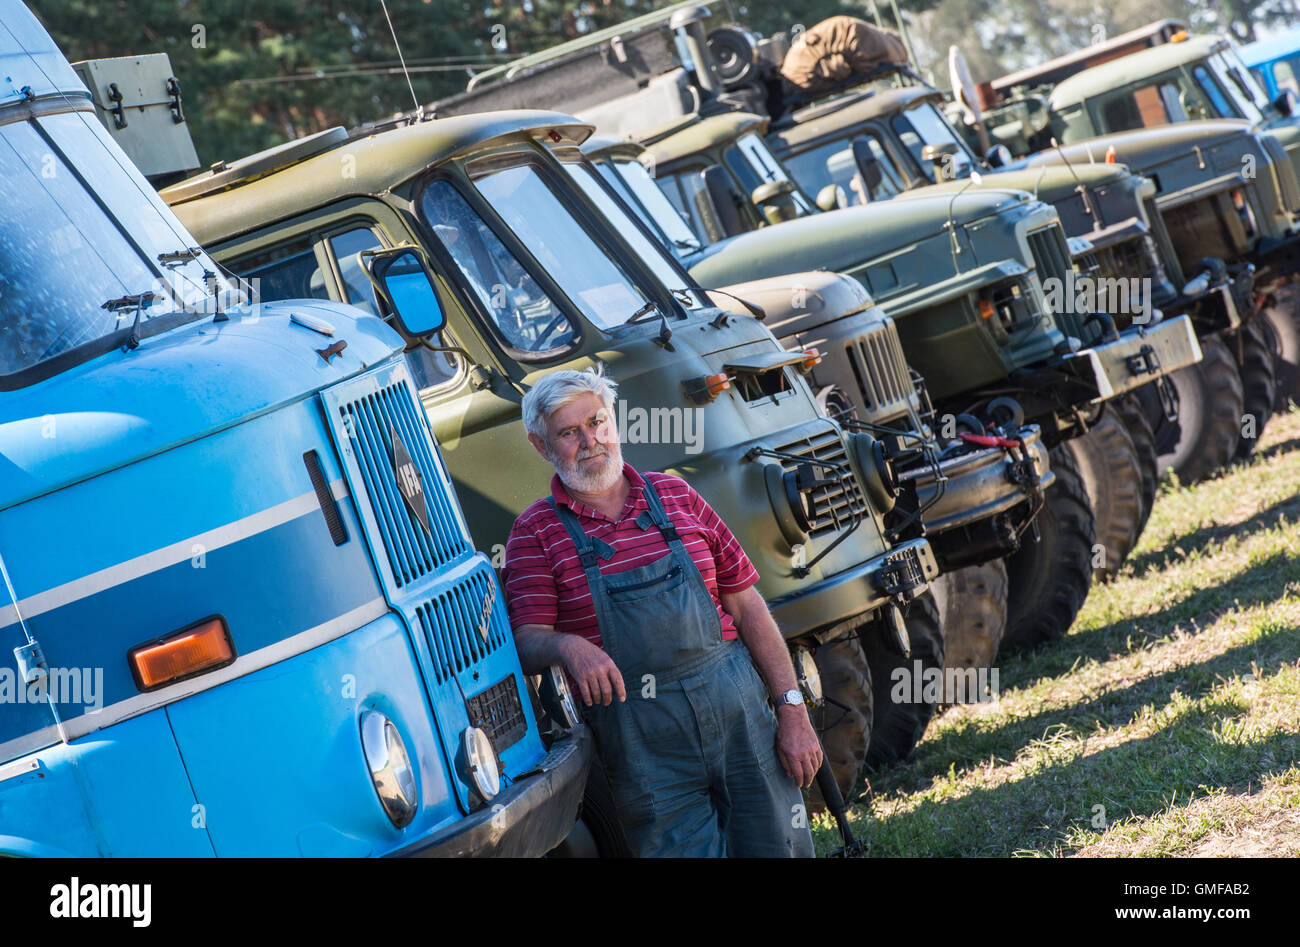 Bad Saarow, Germany. 26th Aug, 2016. Dietmar Forche, co-organiser of the 7th Ural festival, stands on the festival - Stock Image